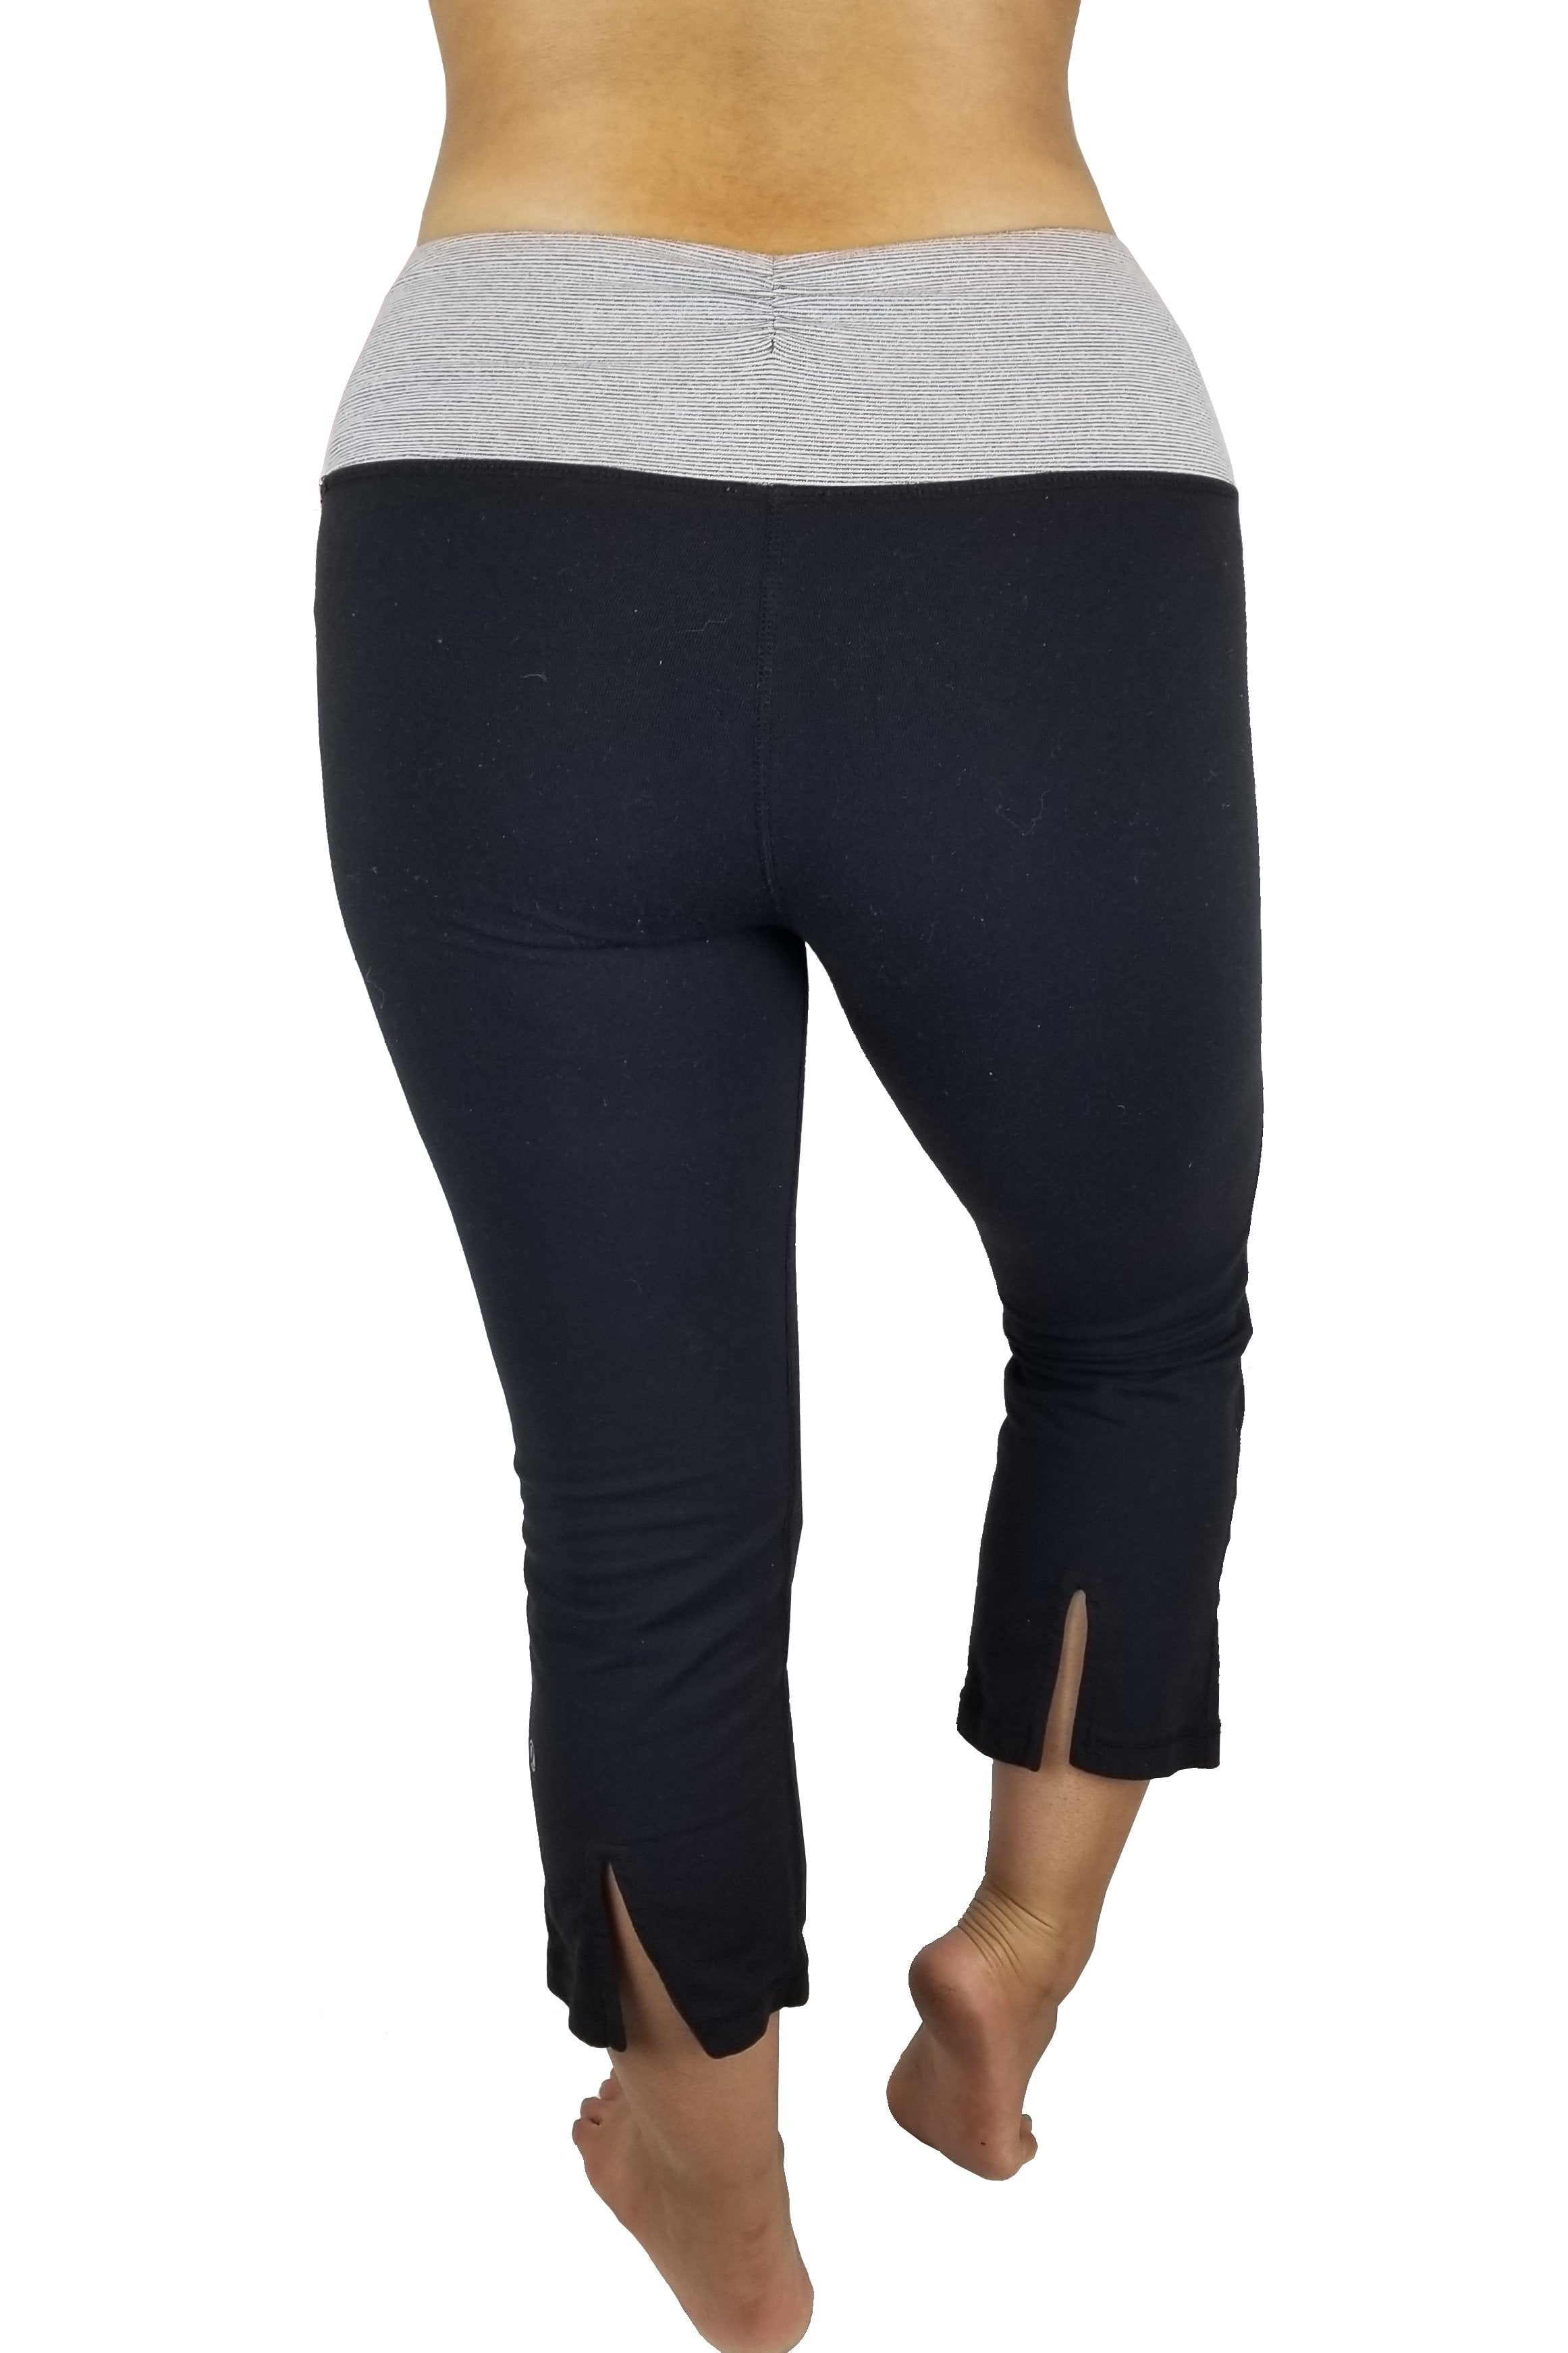 Lululemon Ankle length wide yoga pants, Vancouver street wear/Yoga pants.Lululemon size 6. https://info.lululemon.com/help/size-chart, Black, Grey, Nylon, Lycra, and Spandex, Yoga, yoga pants, women's athletic wear, women's work out clothes, women's comfortable pants, fitness, fit